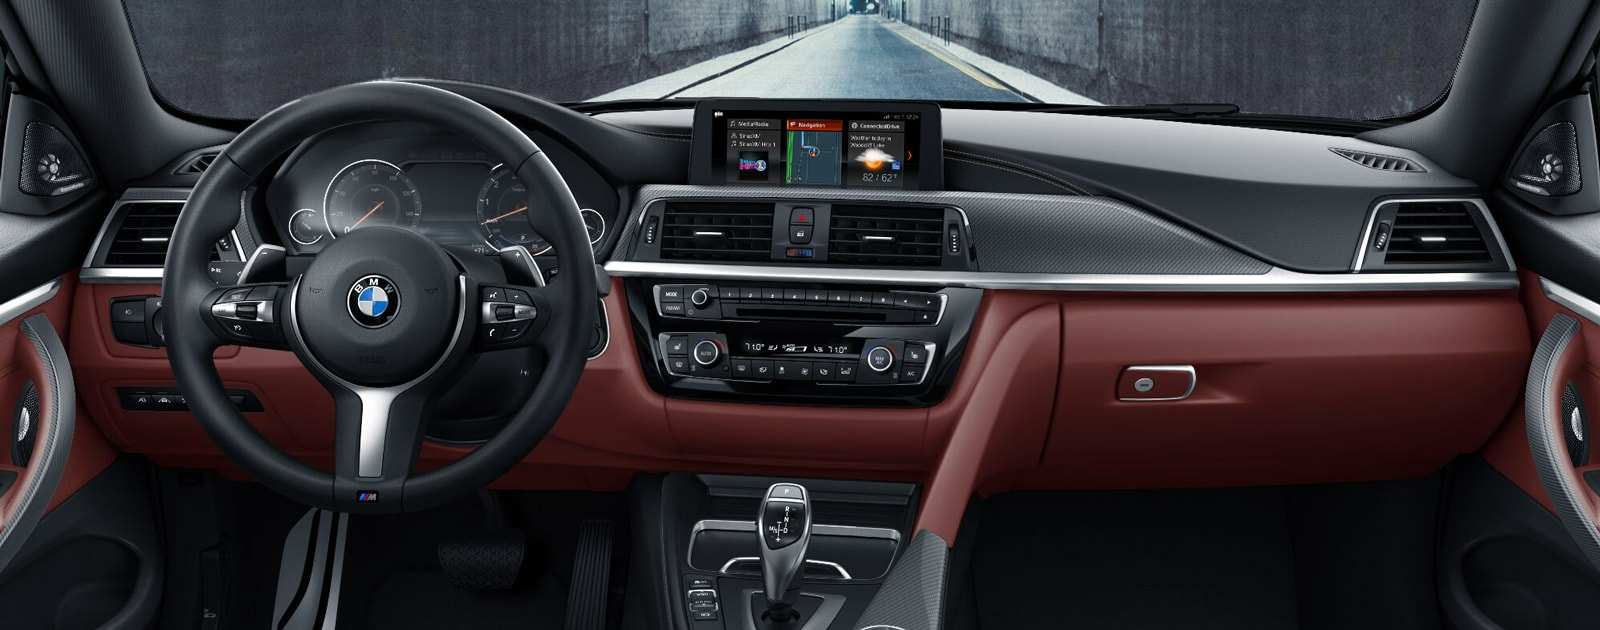 19 All New 2019 Bmw 4 Series Release Date Interior